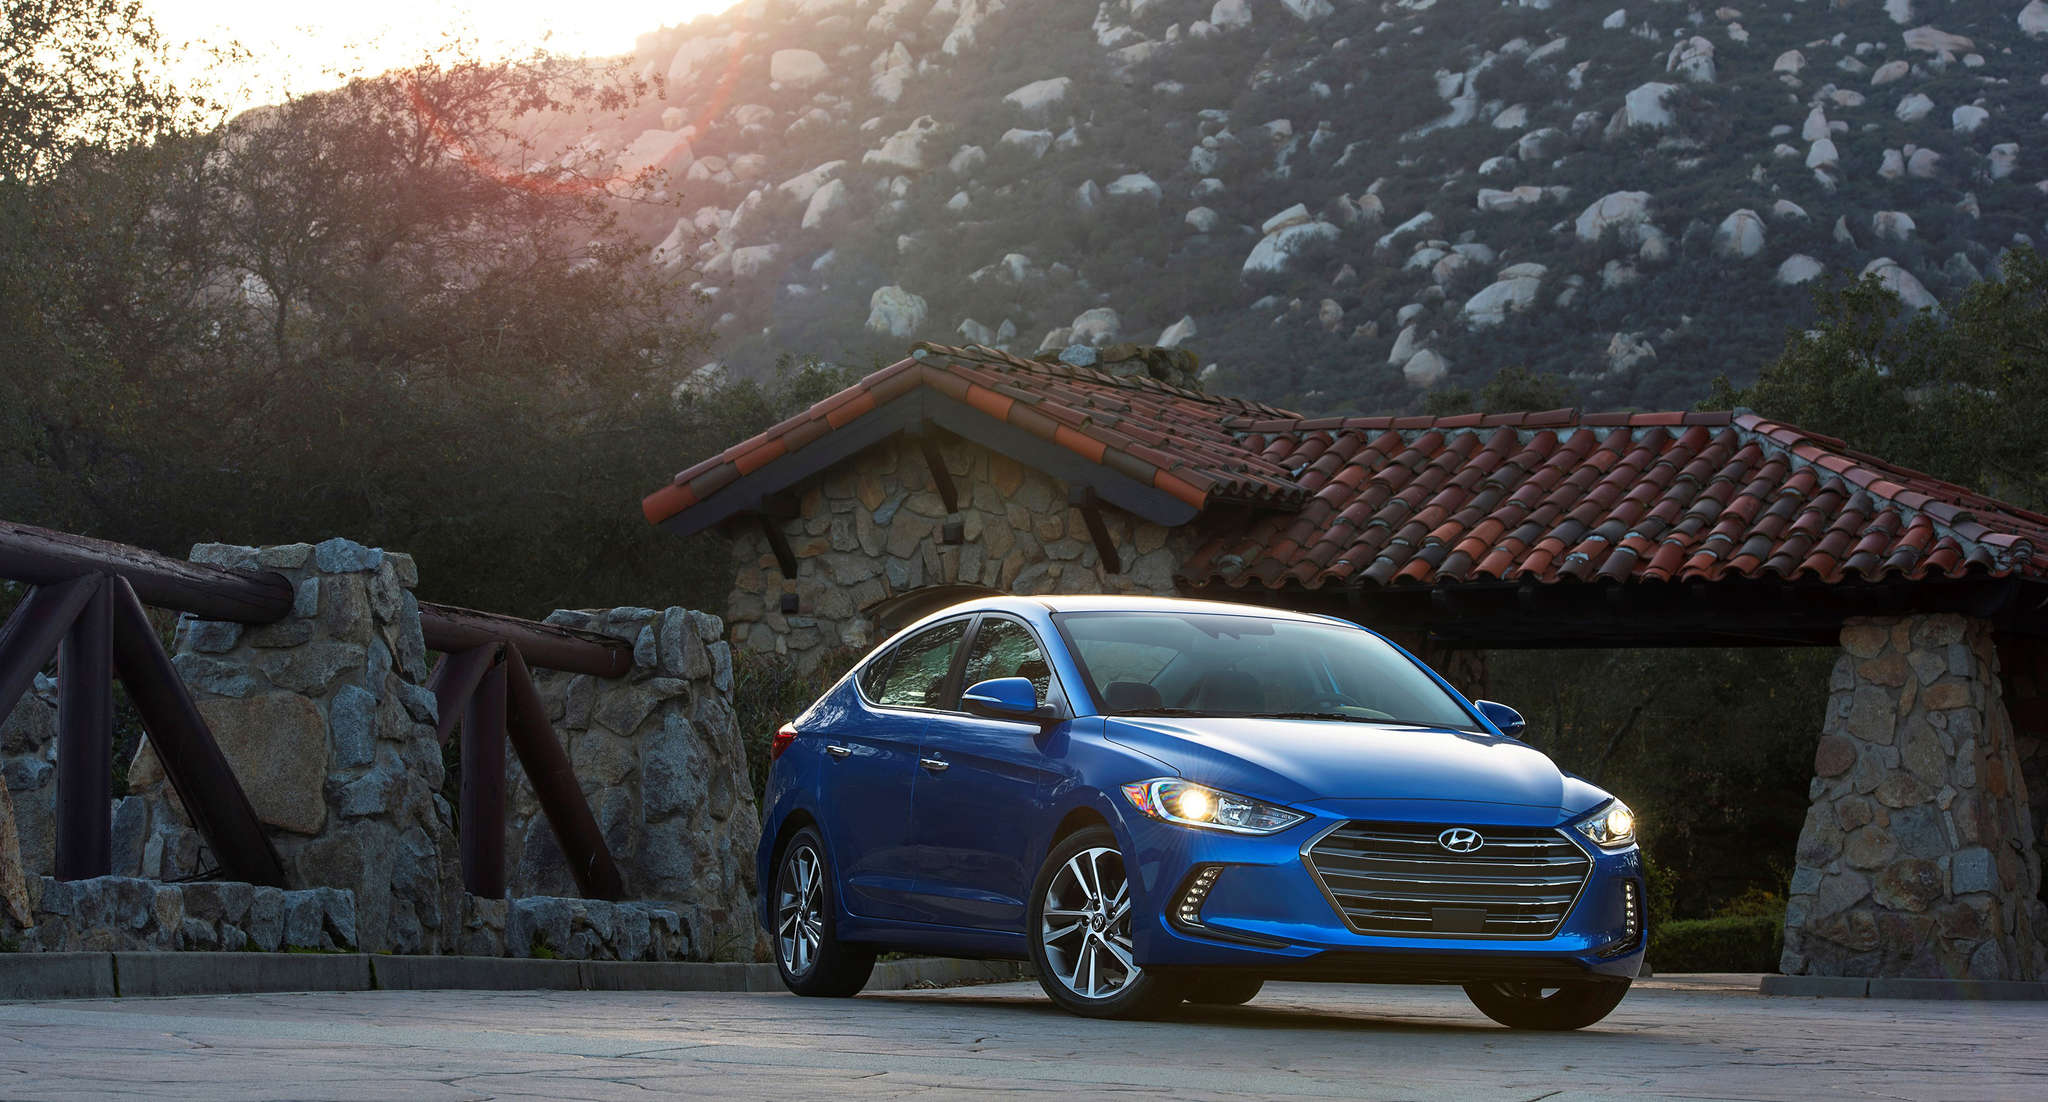 The 2017 Hyundai Elantra sedan gets a brand-new look for the model year and plenty of improvements, including better fuel economy.